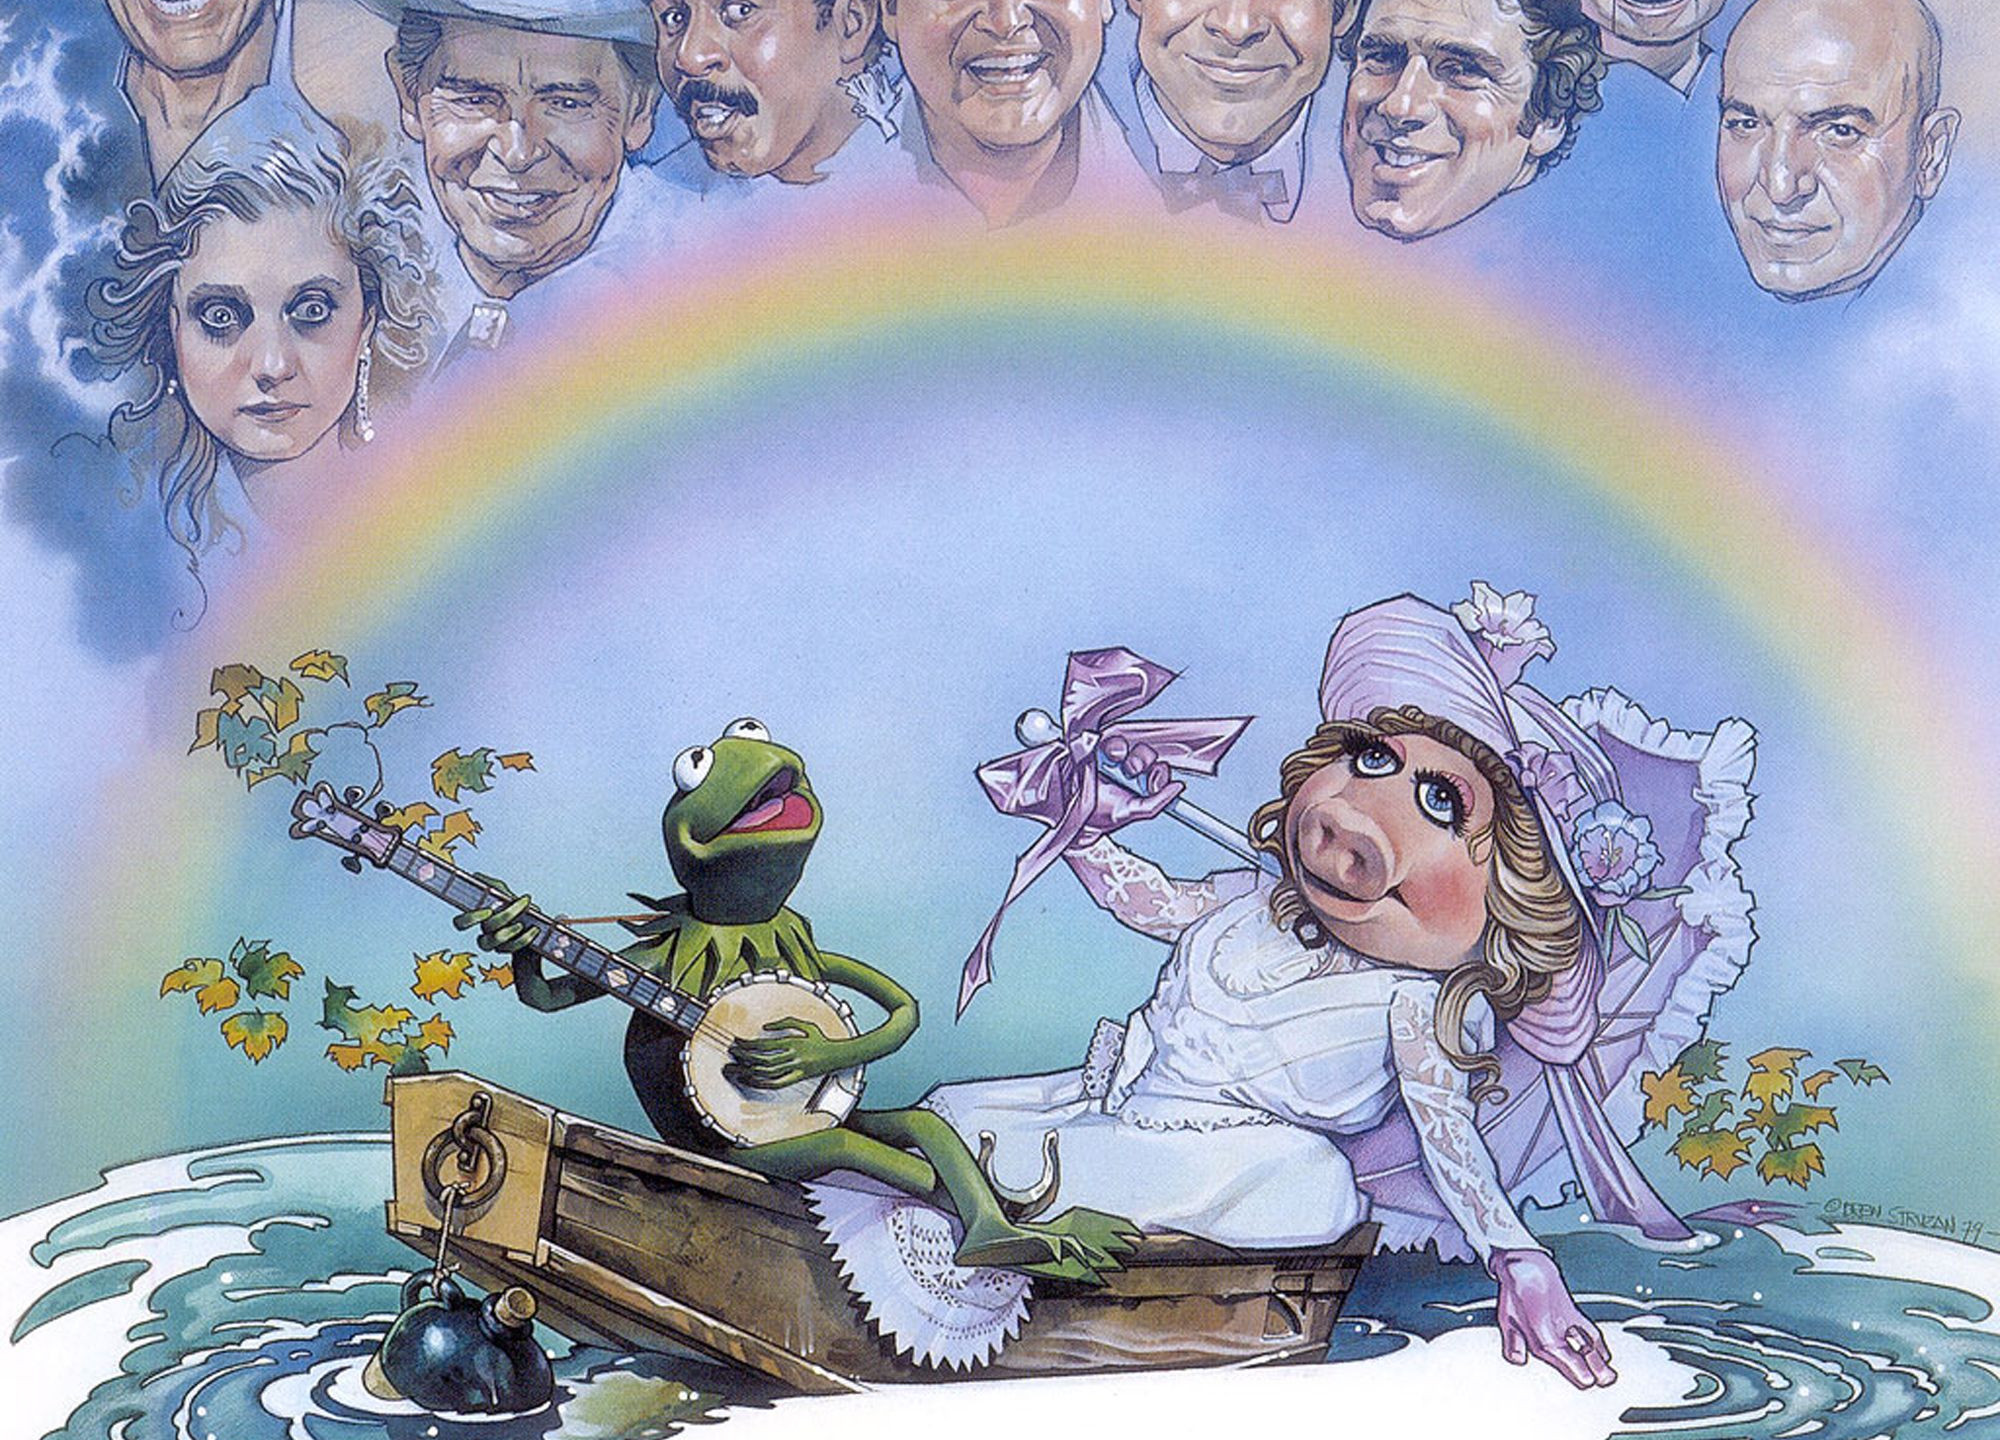 THE MUPPET MOVIE poster by Drew Struzan